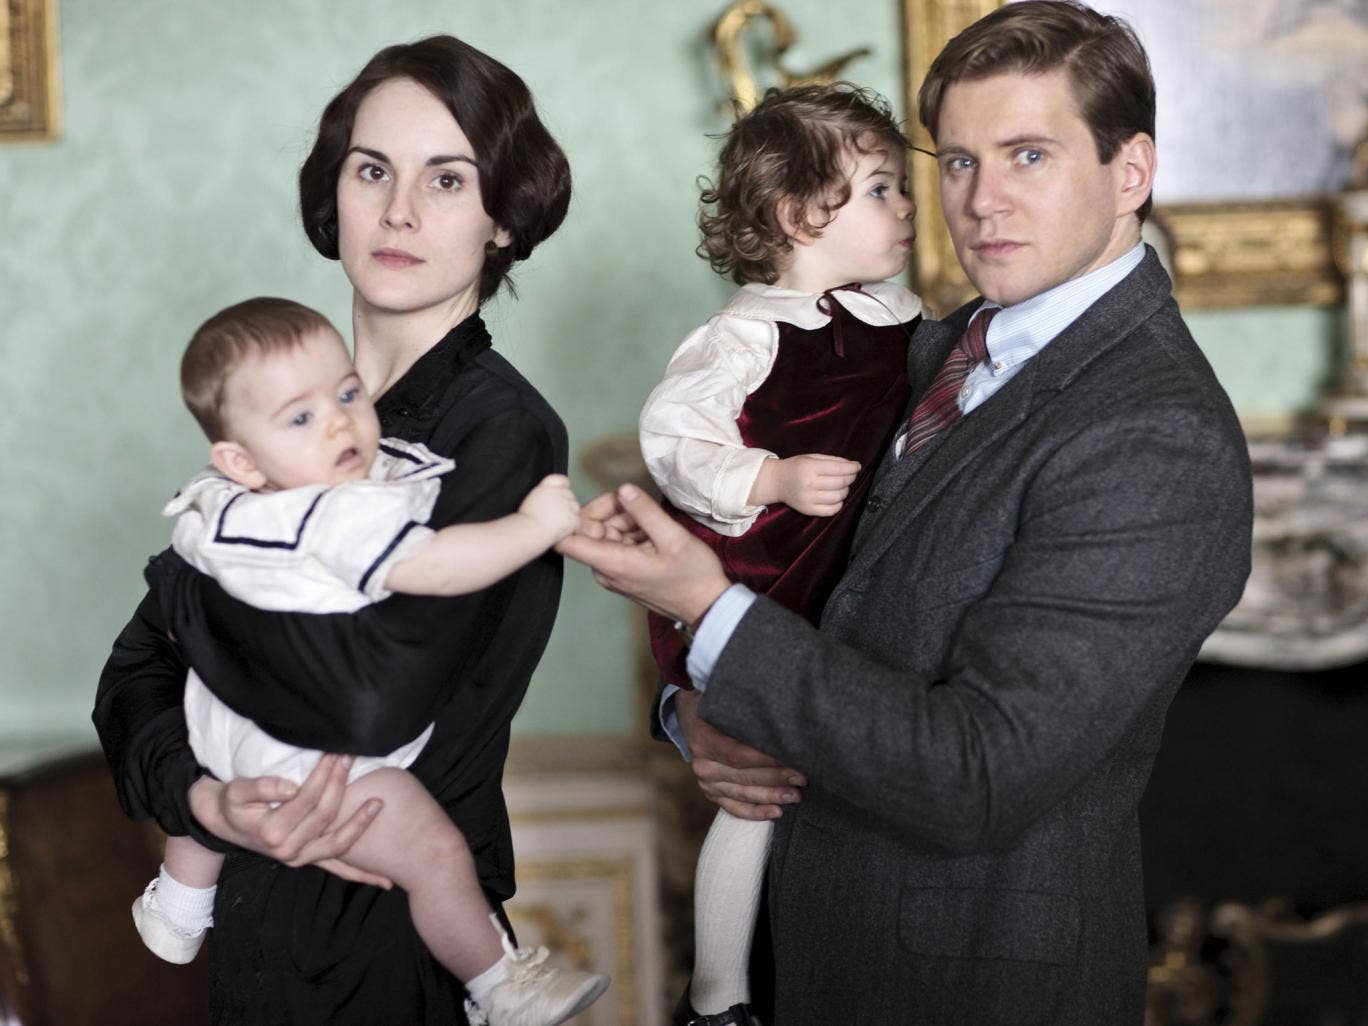 Posh parents: Downton Abbey's Lady Mary with baby George, and Tom Branson with Sybbie